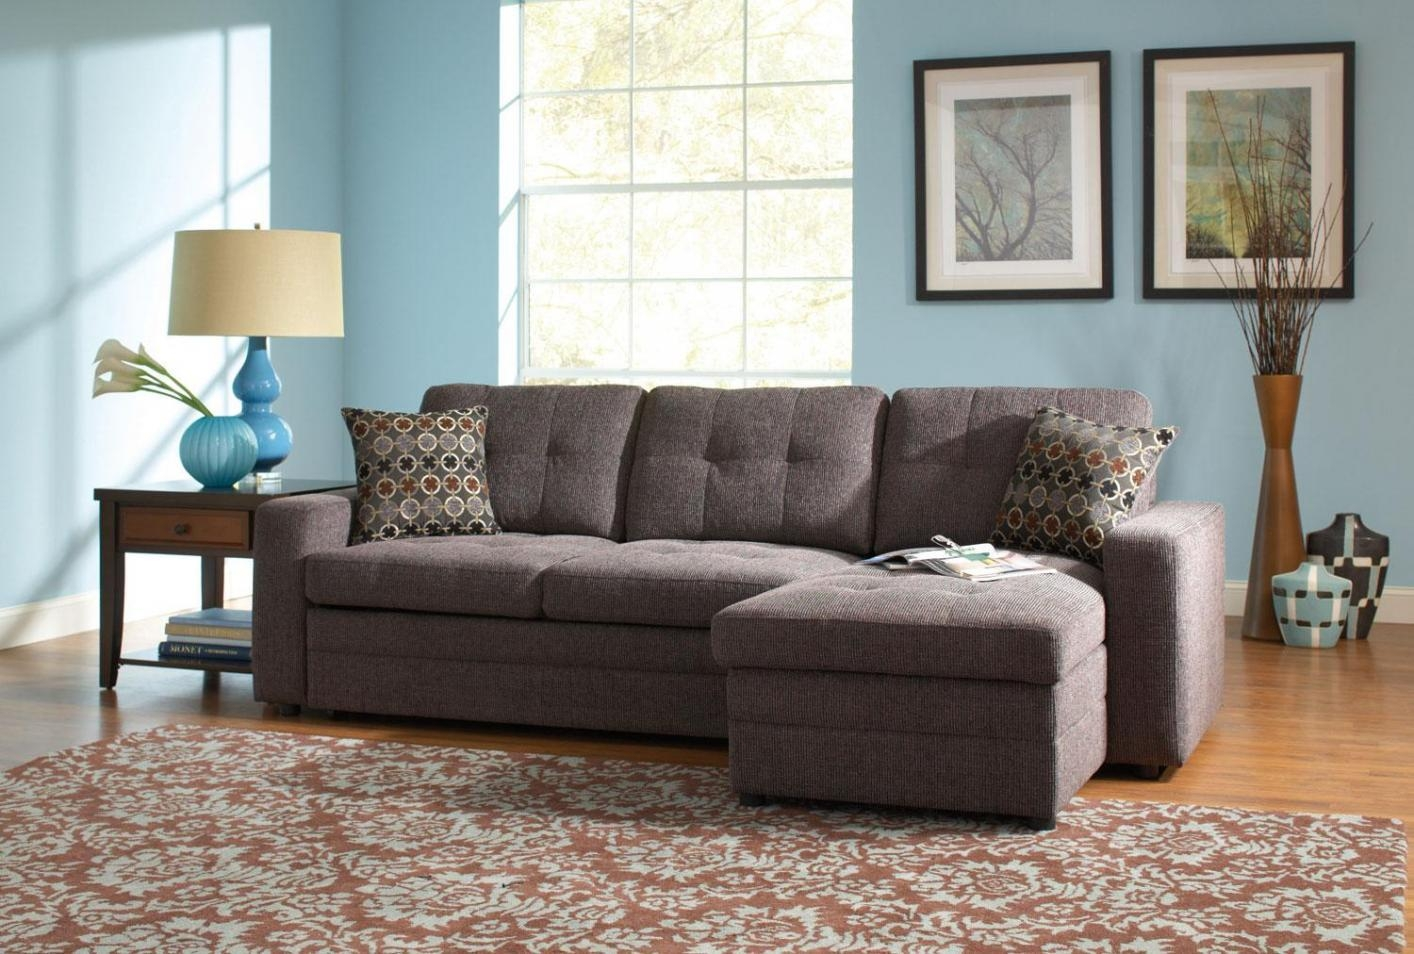 Gus Black Fabric Sectional Sleeper Sofa - Steal-A-Sofa Furniture throughout Los Angeles Sleeper Sofas